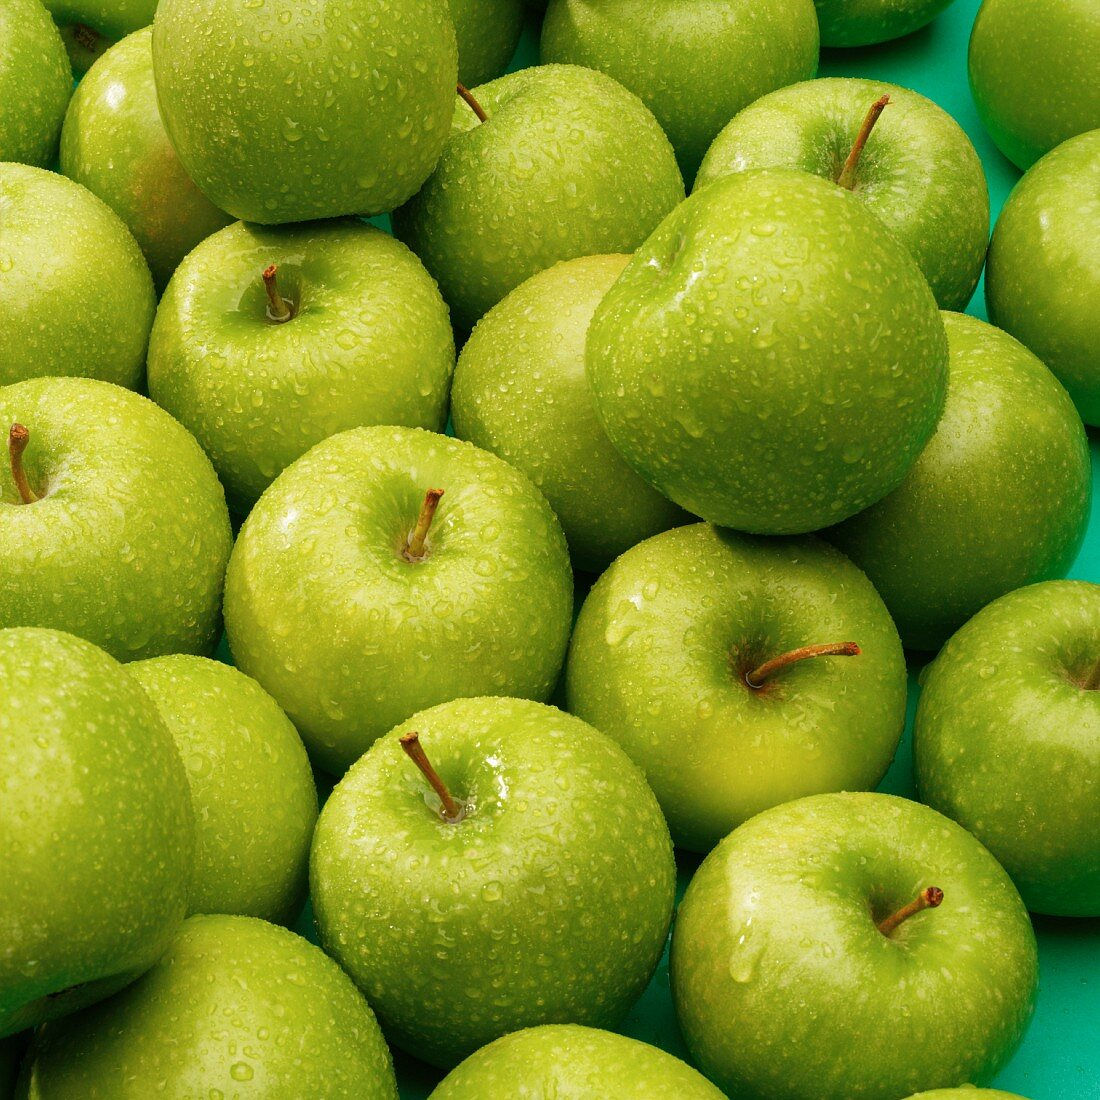 Lots of freshly washed green apples